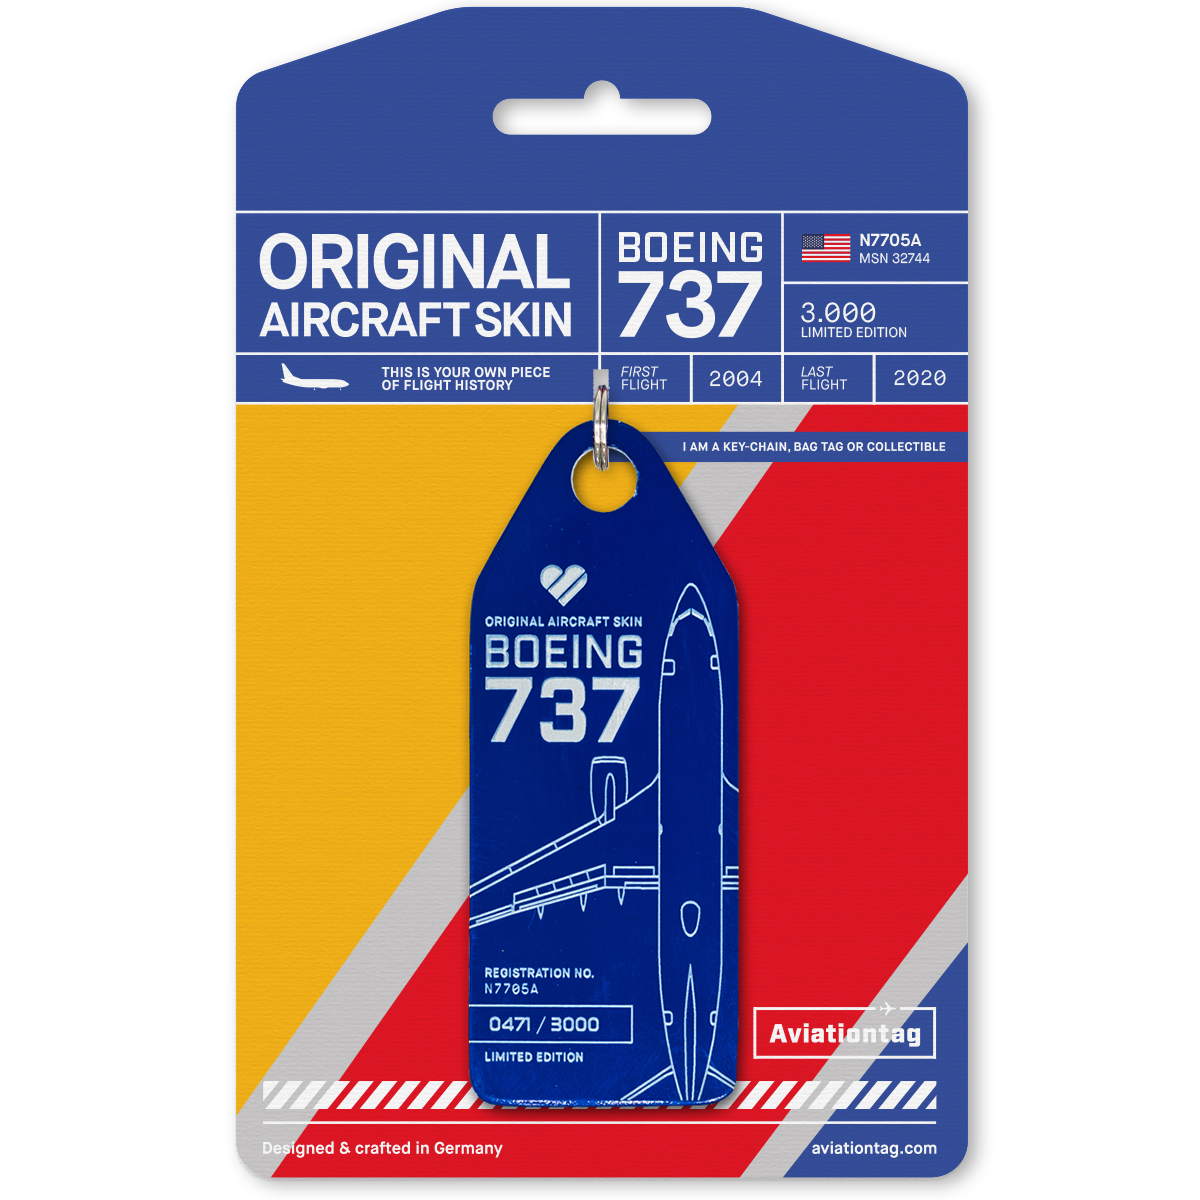 Aviationtag - Southwest Airlines Boeing 737 N7705A